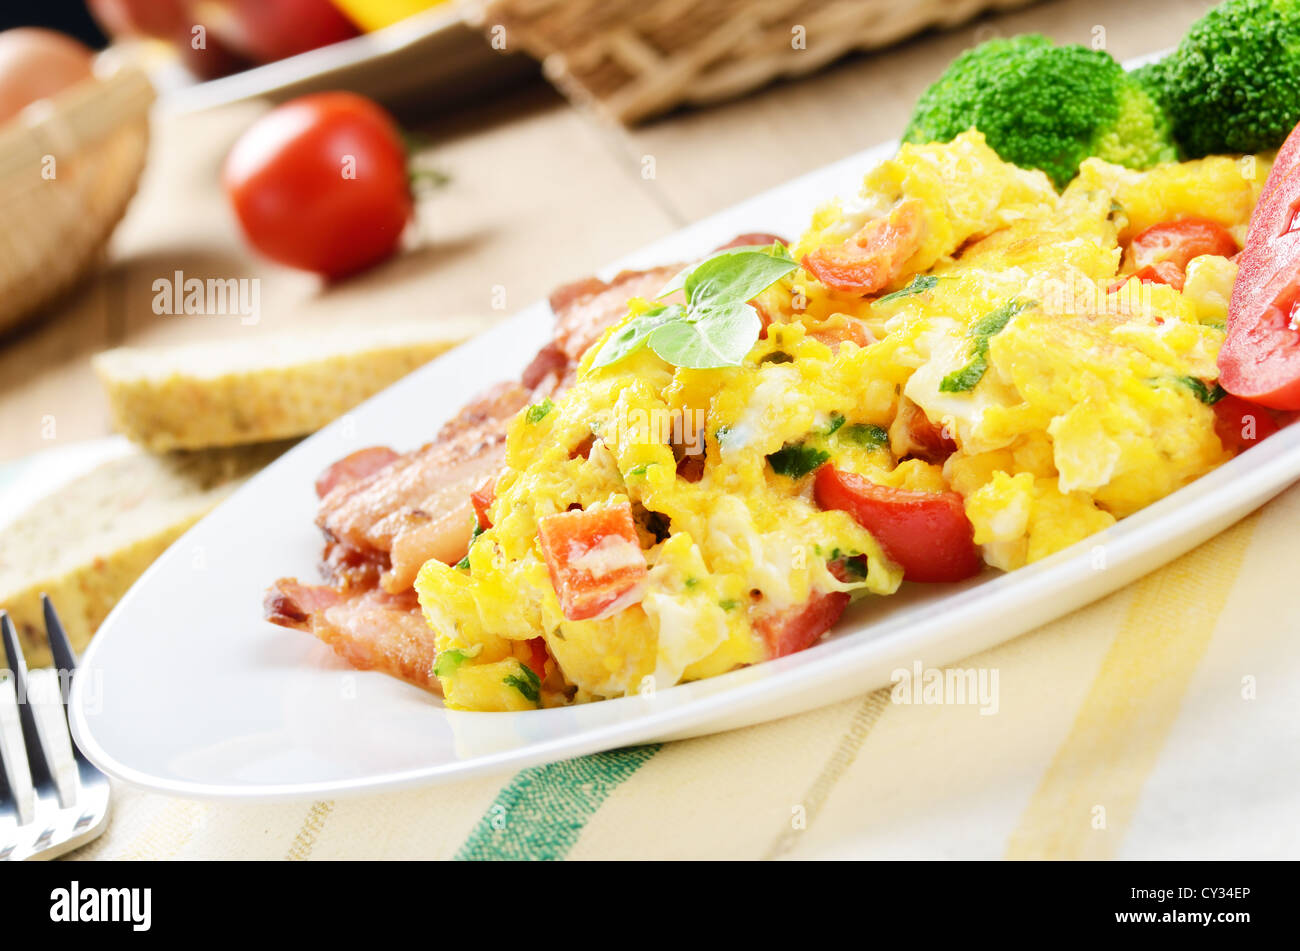 Omelet with vegetables, fried bacon and bread - Stock Image